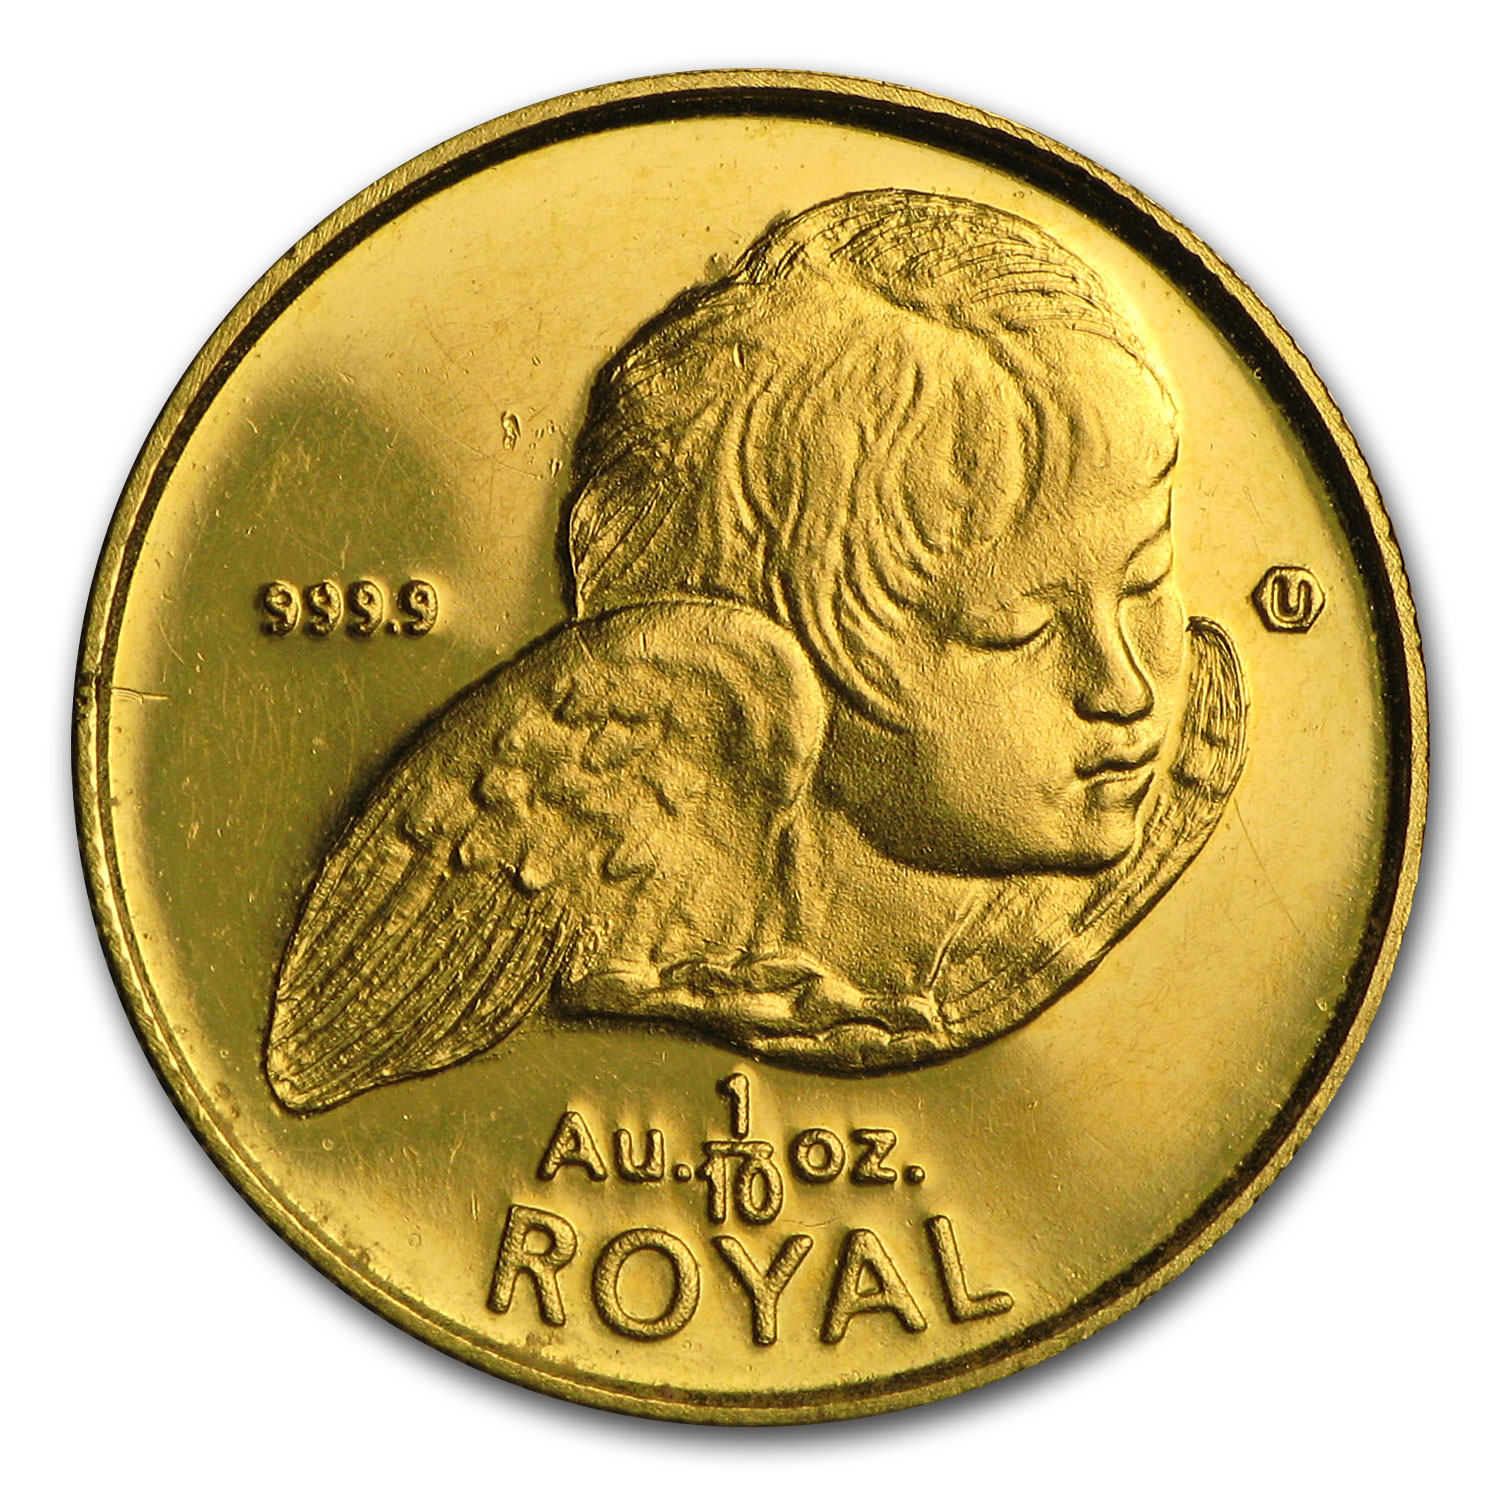 Gibraltar 1/10 oz Gold Royal Cherubs Unc. (Random Dates)